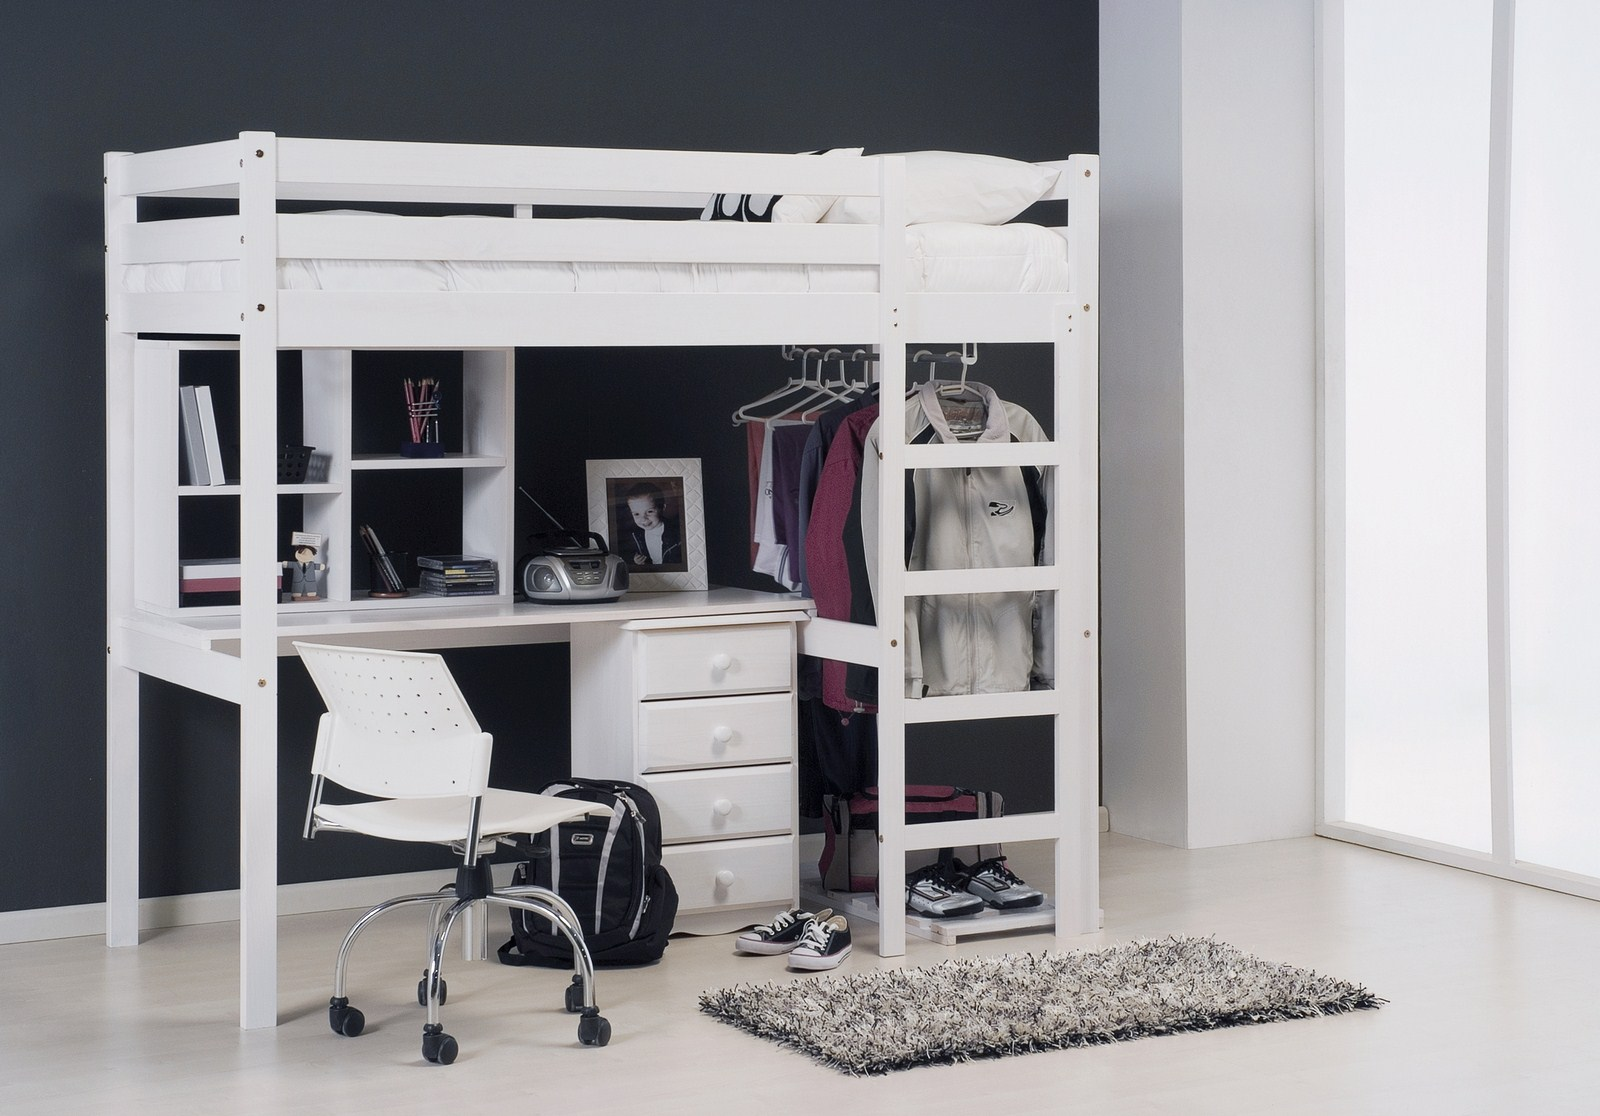 le lit mezzanine pratique et ludique la fois au bon sommeil. Black Bedroom Furniture Sets. Home Design Ideas